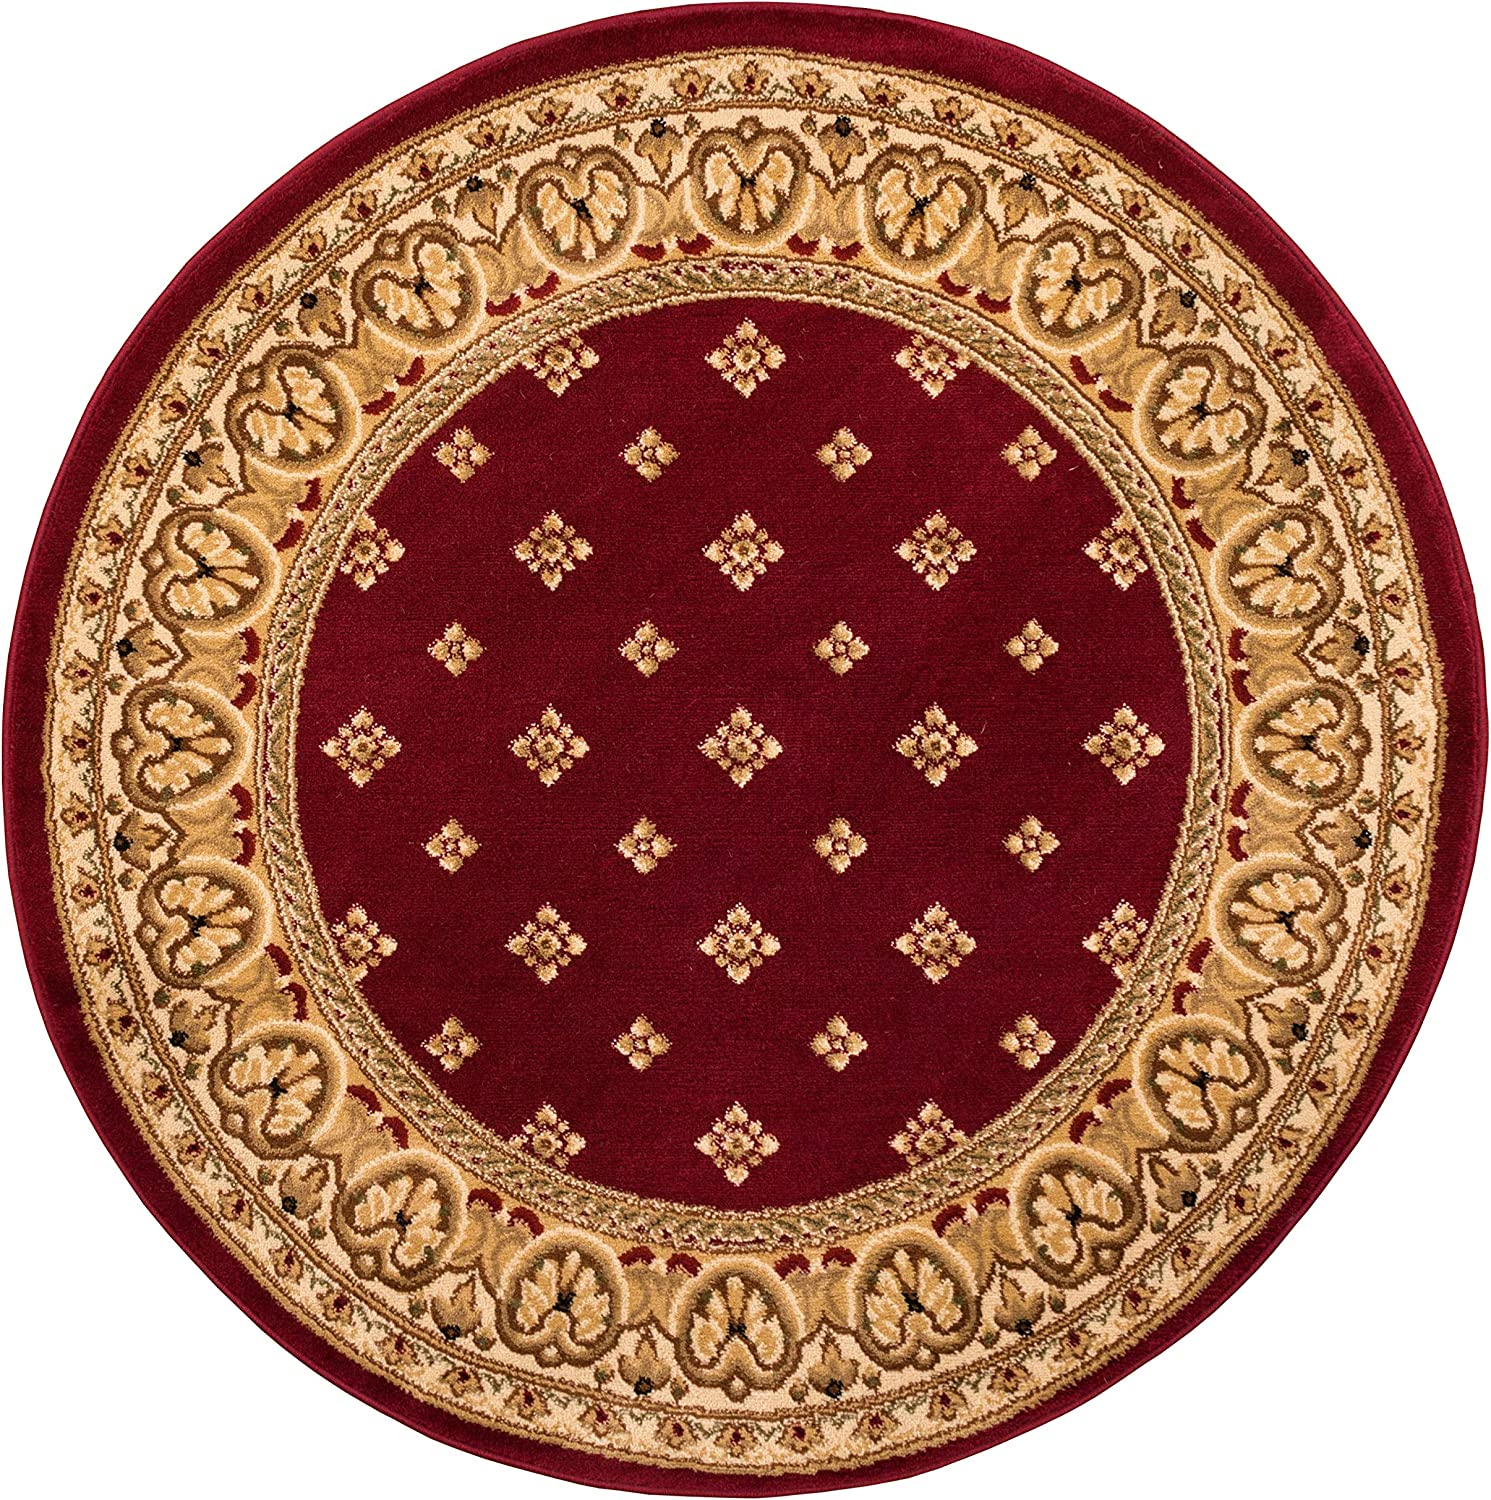 Noble Palace Red French free shipping European Traditional 5' 5 Round Over item handling ☆ Formal